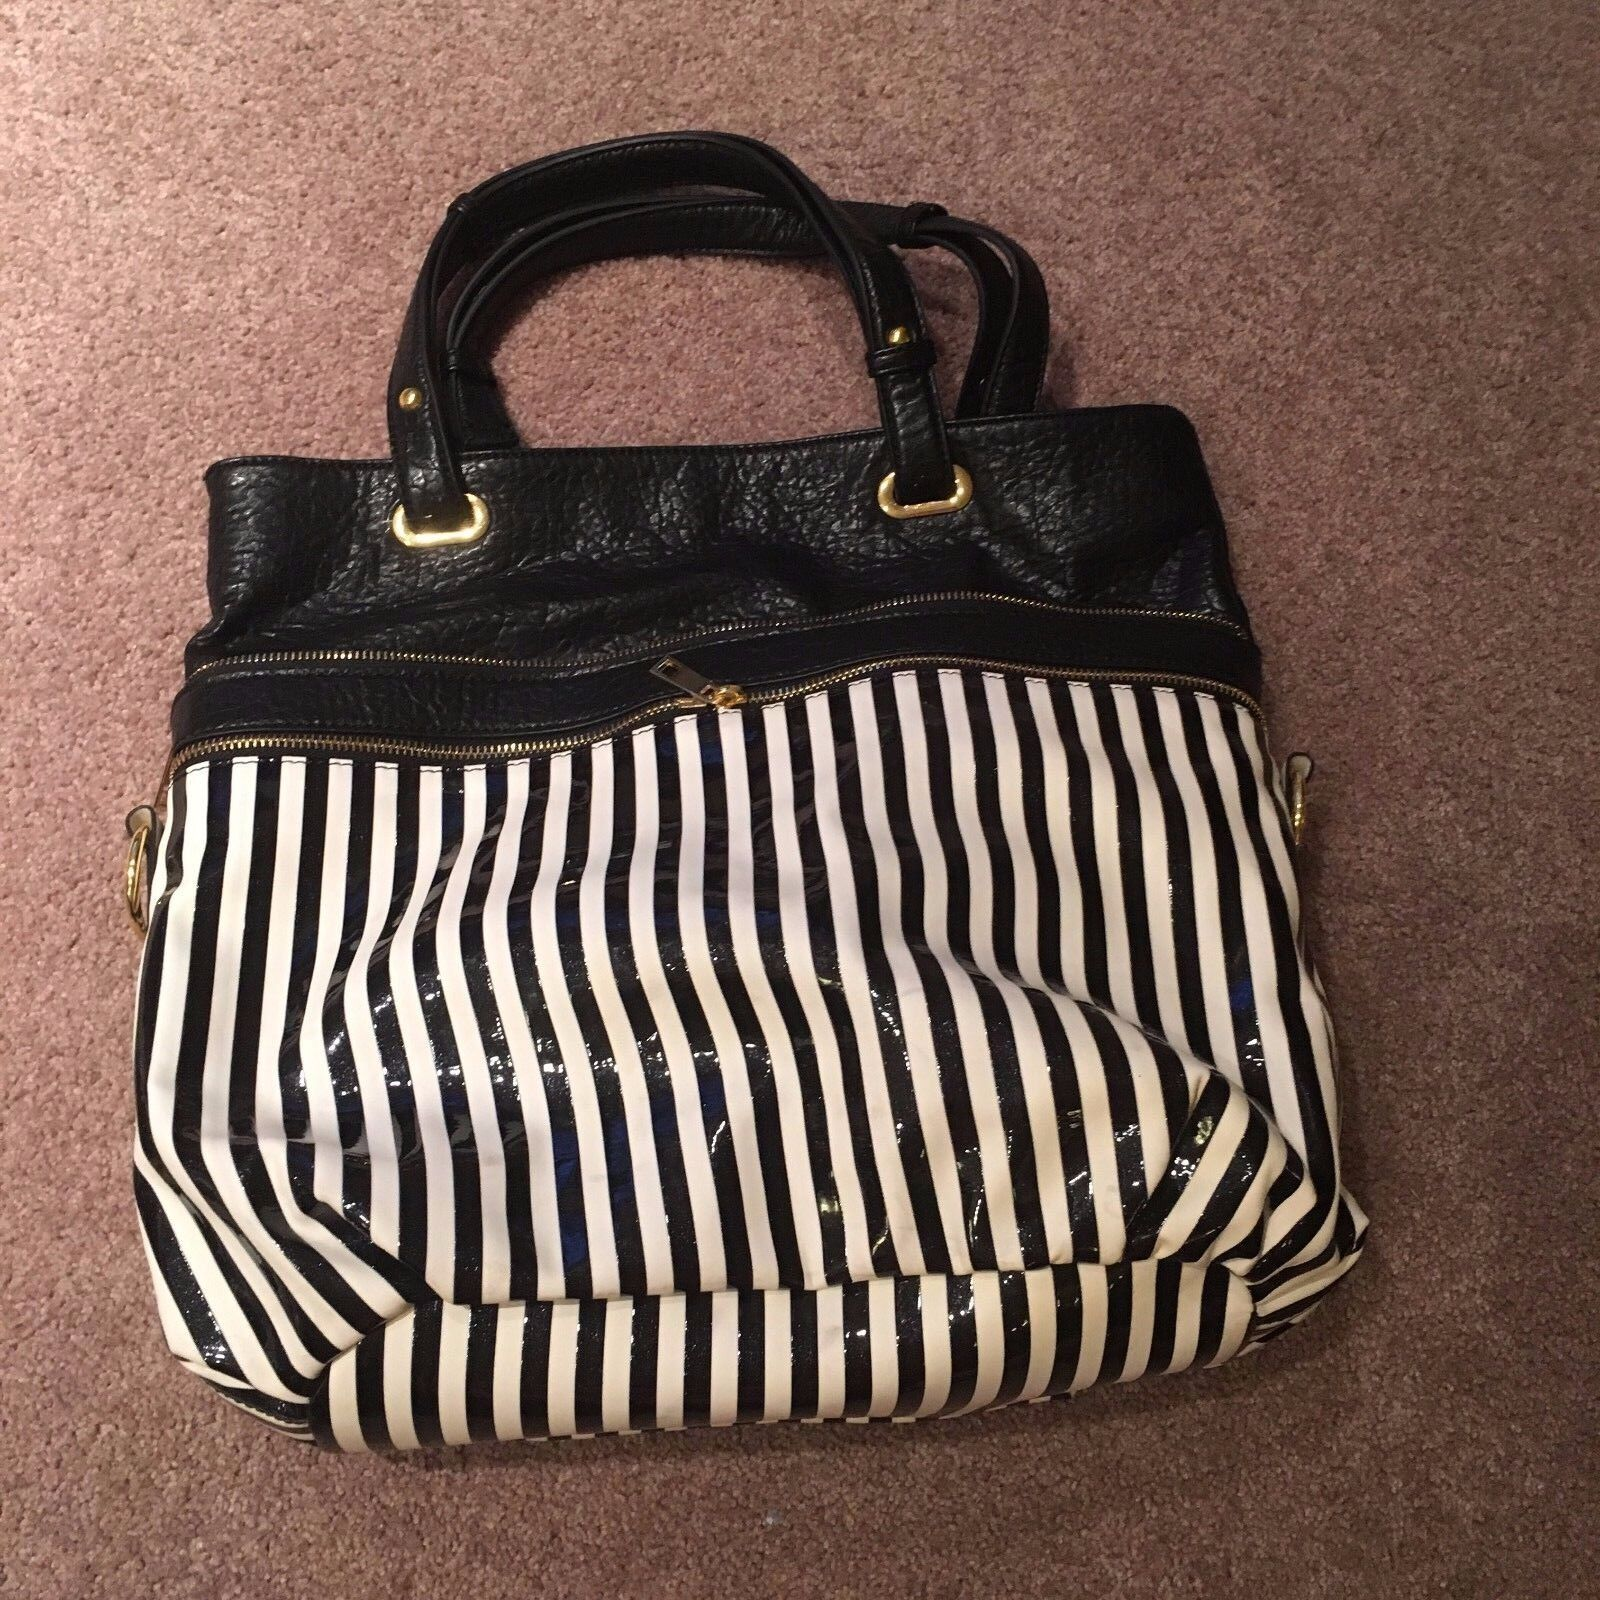 Ladies New Directions pocketbook black white striped leather women's purse